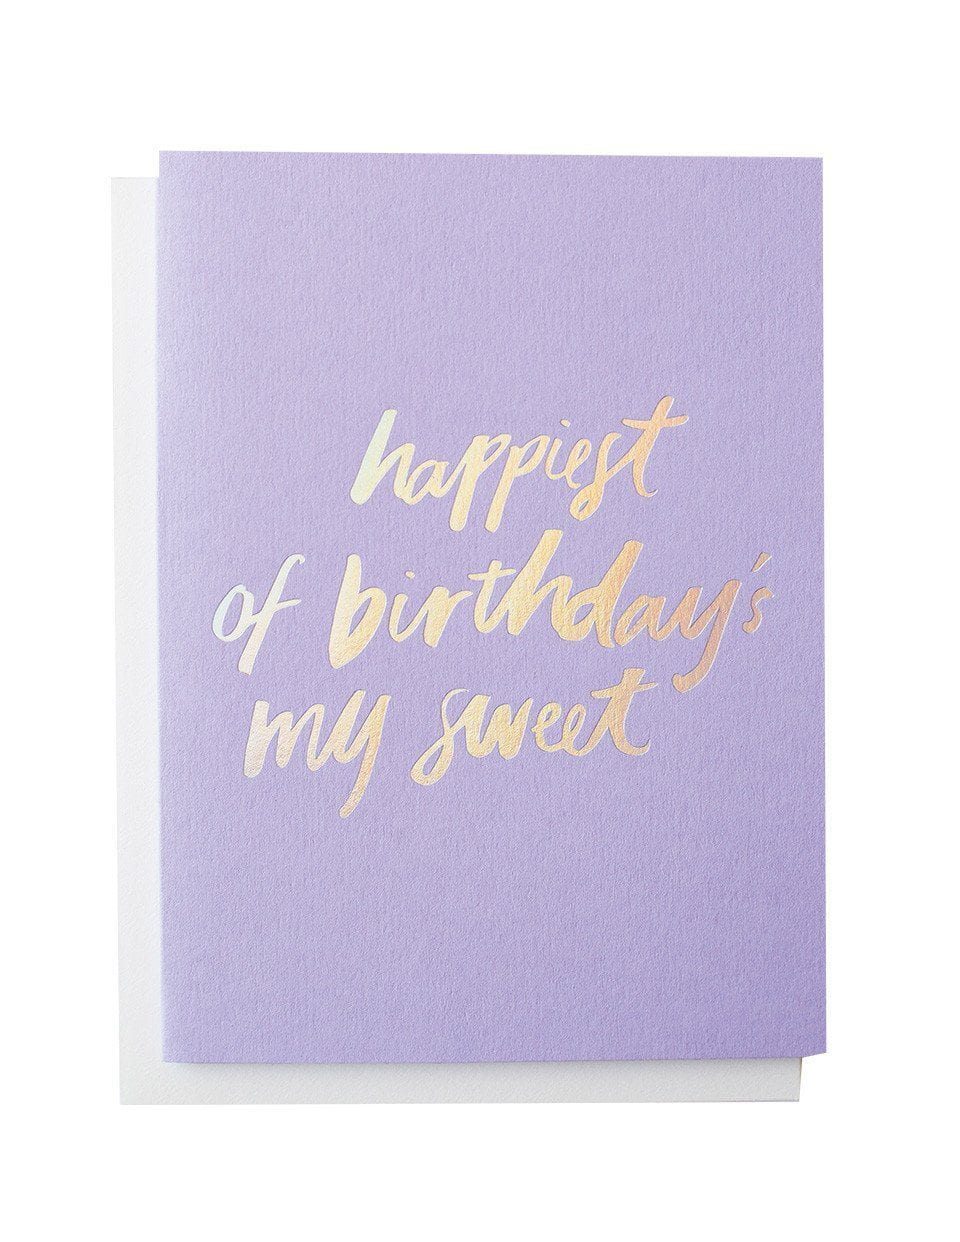 Happy Birthday Holographic foiled greeting card | Blushing Confetti